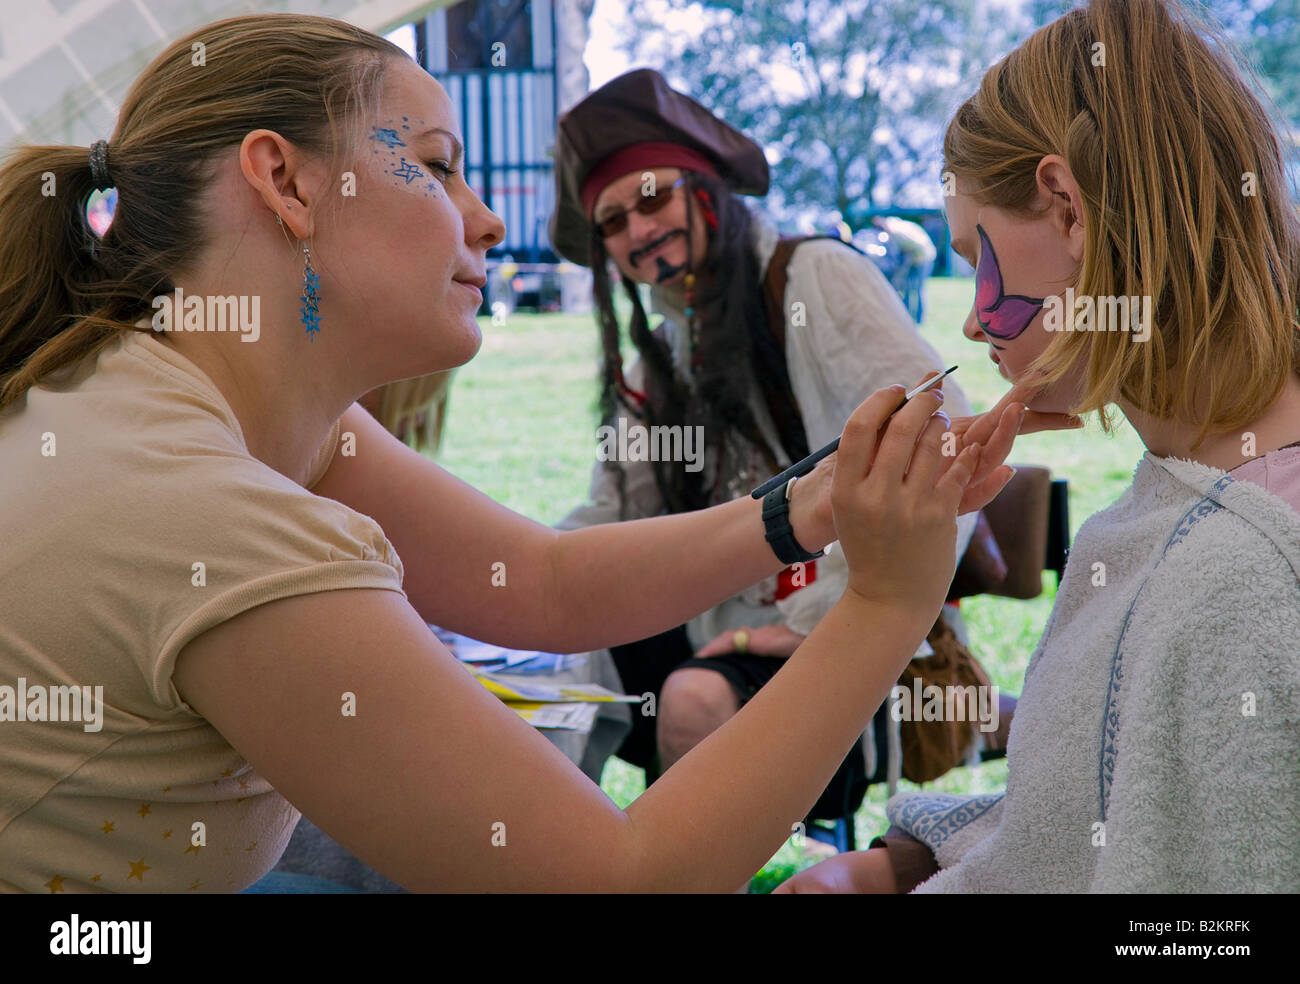 Young girl having her face painted at an activity stall at a riverside gala - Stock Image